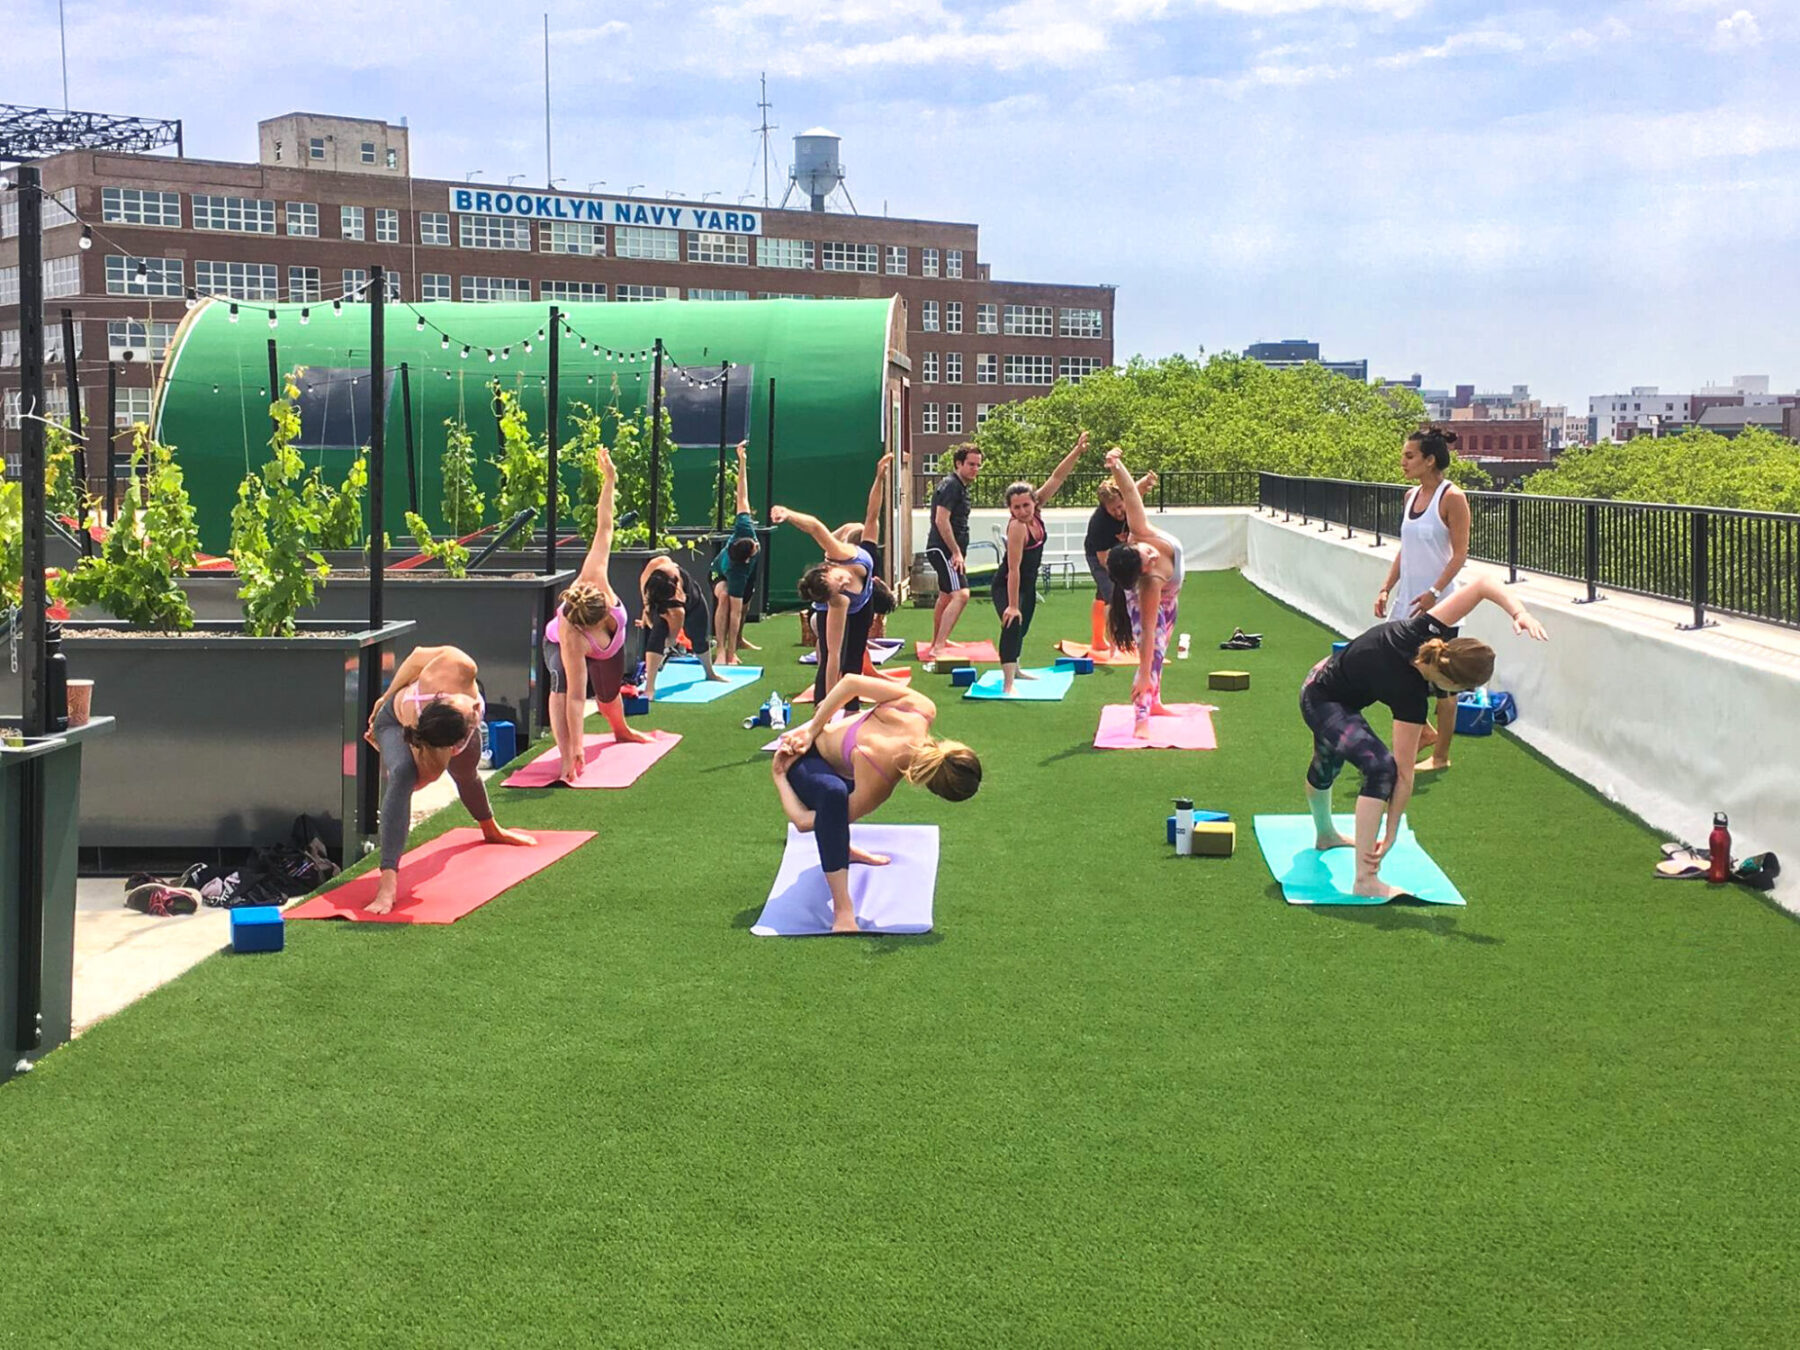 Commercial, New York, Roof, Roofdeck, SYNLawn, Vinyard, Winery, Yoga, artificial grass, lifestyle, rooftop